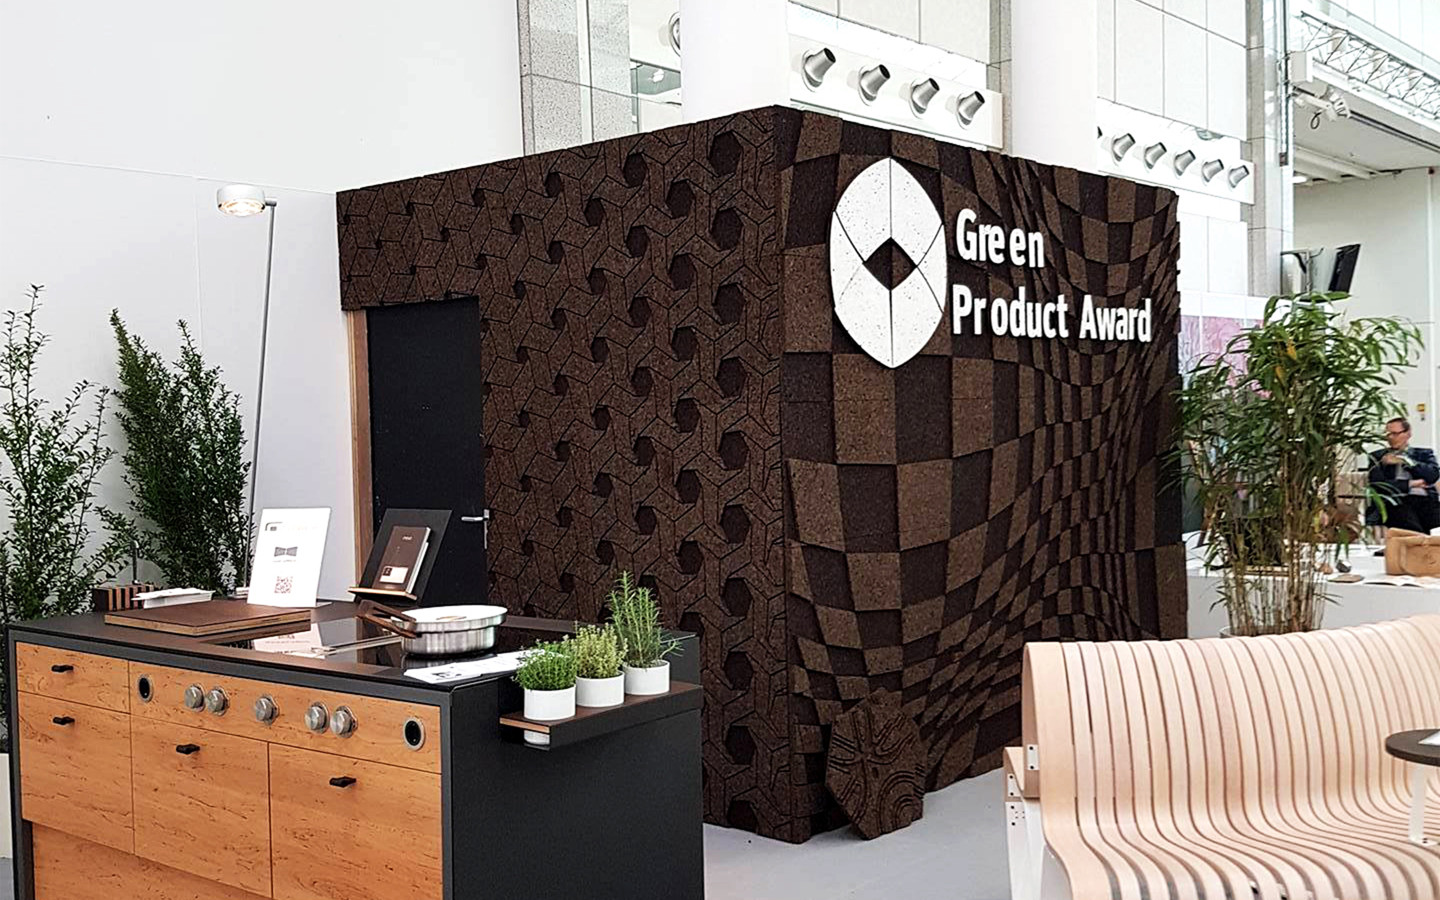 Exhibition Review: Green Product Award 2017